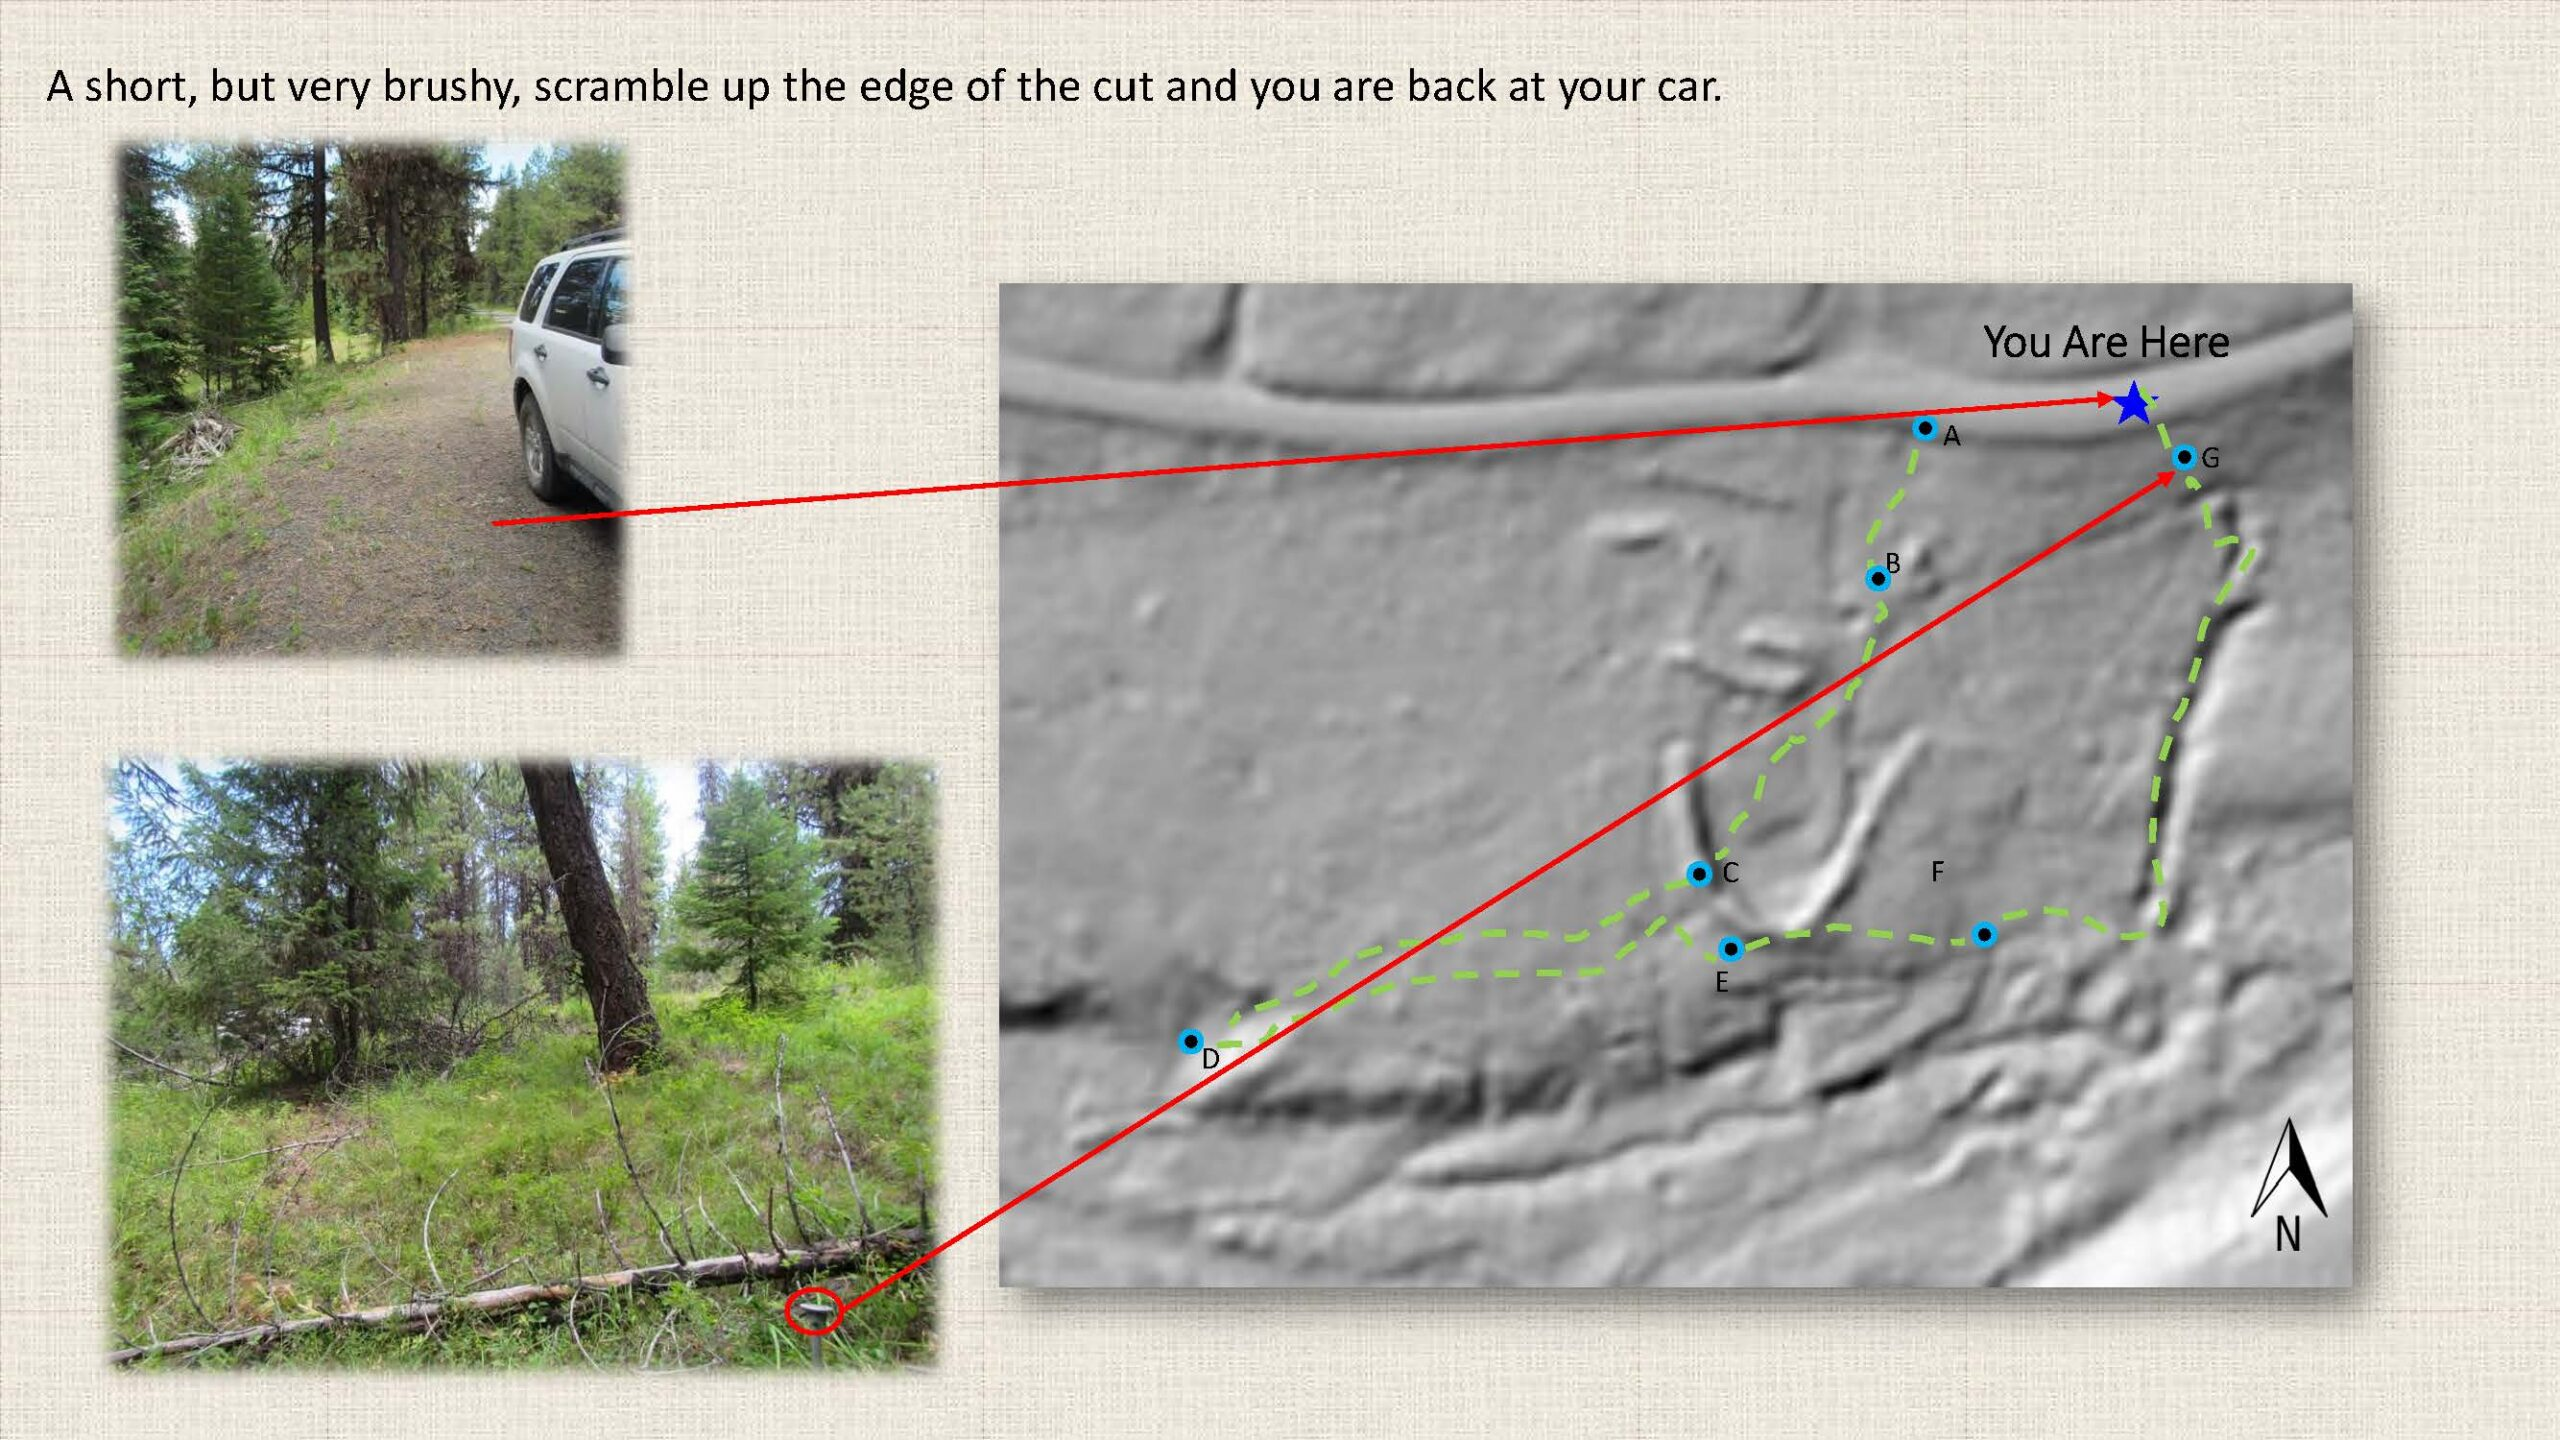 A short, but very brushy, scramble up the edge of the cut and you are back at your car.